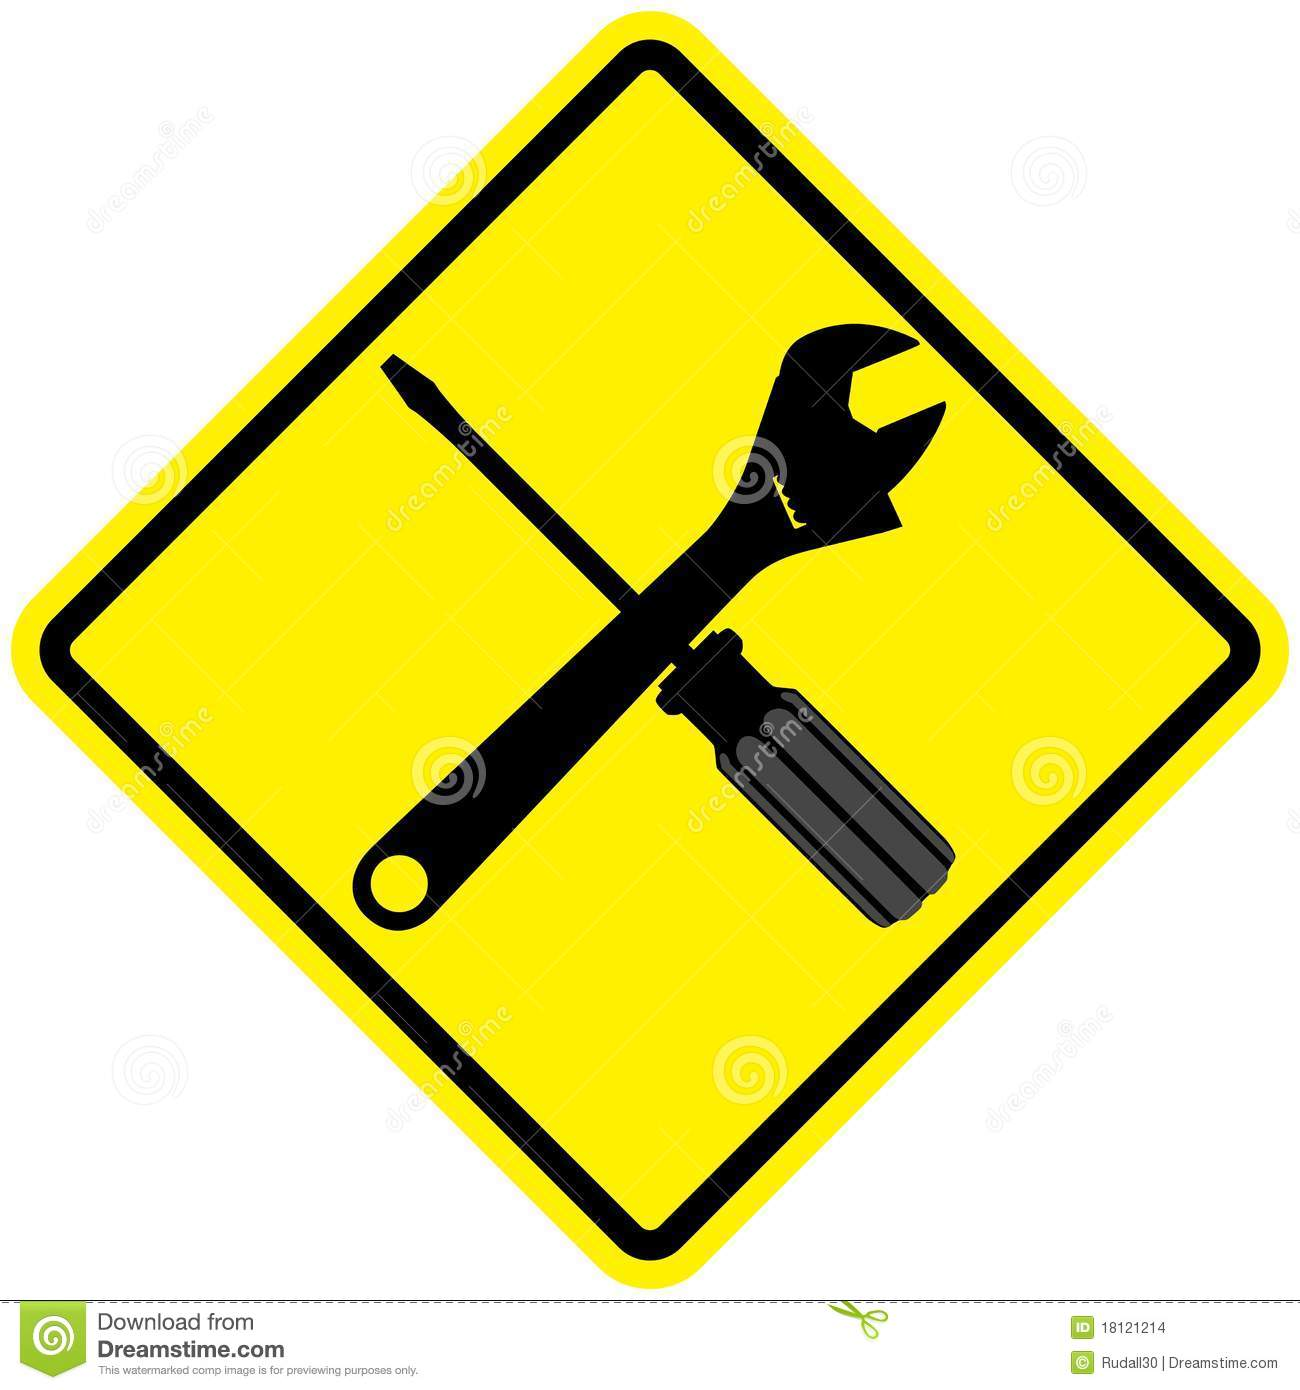 under repair stock images image 18121214 street sign clip art free editable free customized street sign clip art